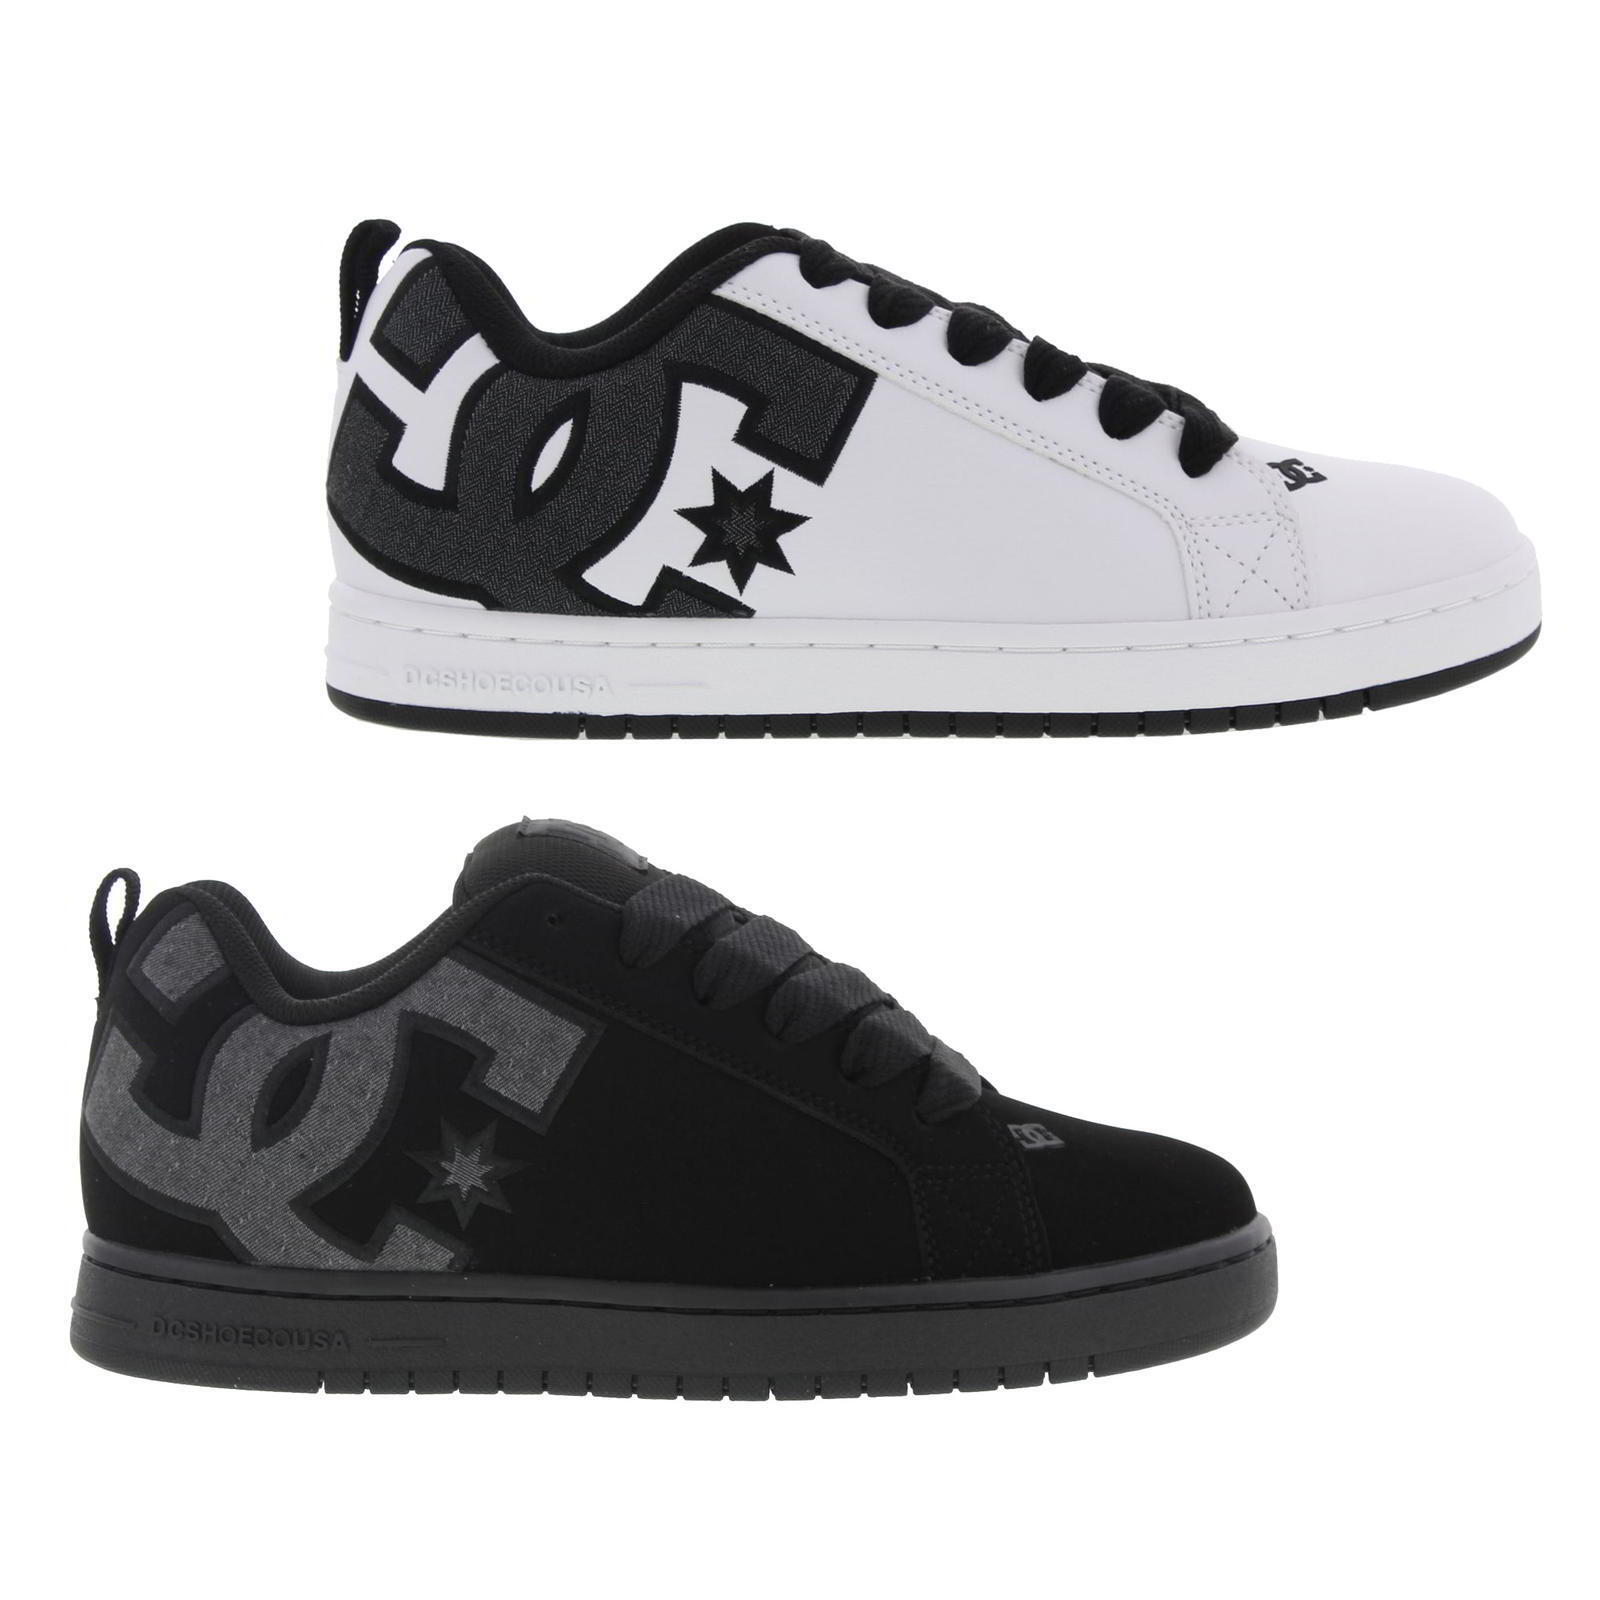 DC Court Zapatos Graffik SE Hombre Negro Blanco Leather Skate Zapatos Court Trainers Talla 7-16 ded914